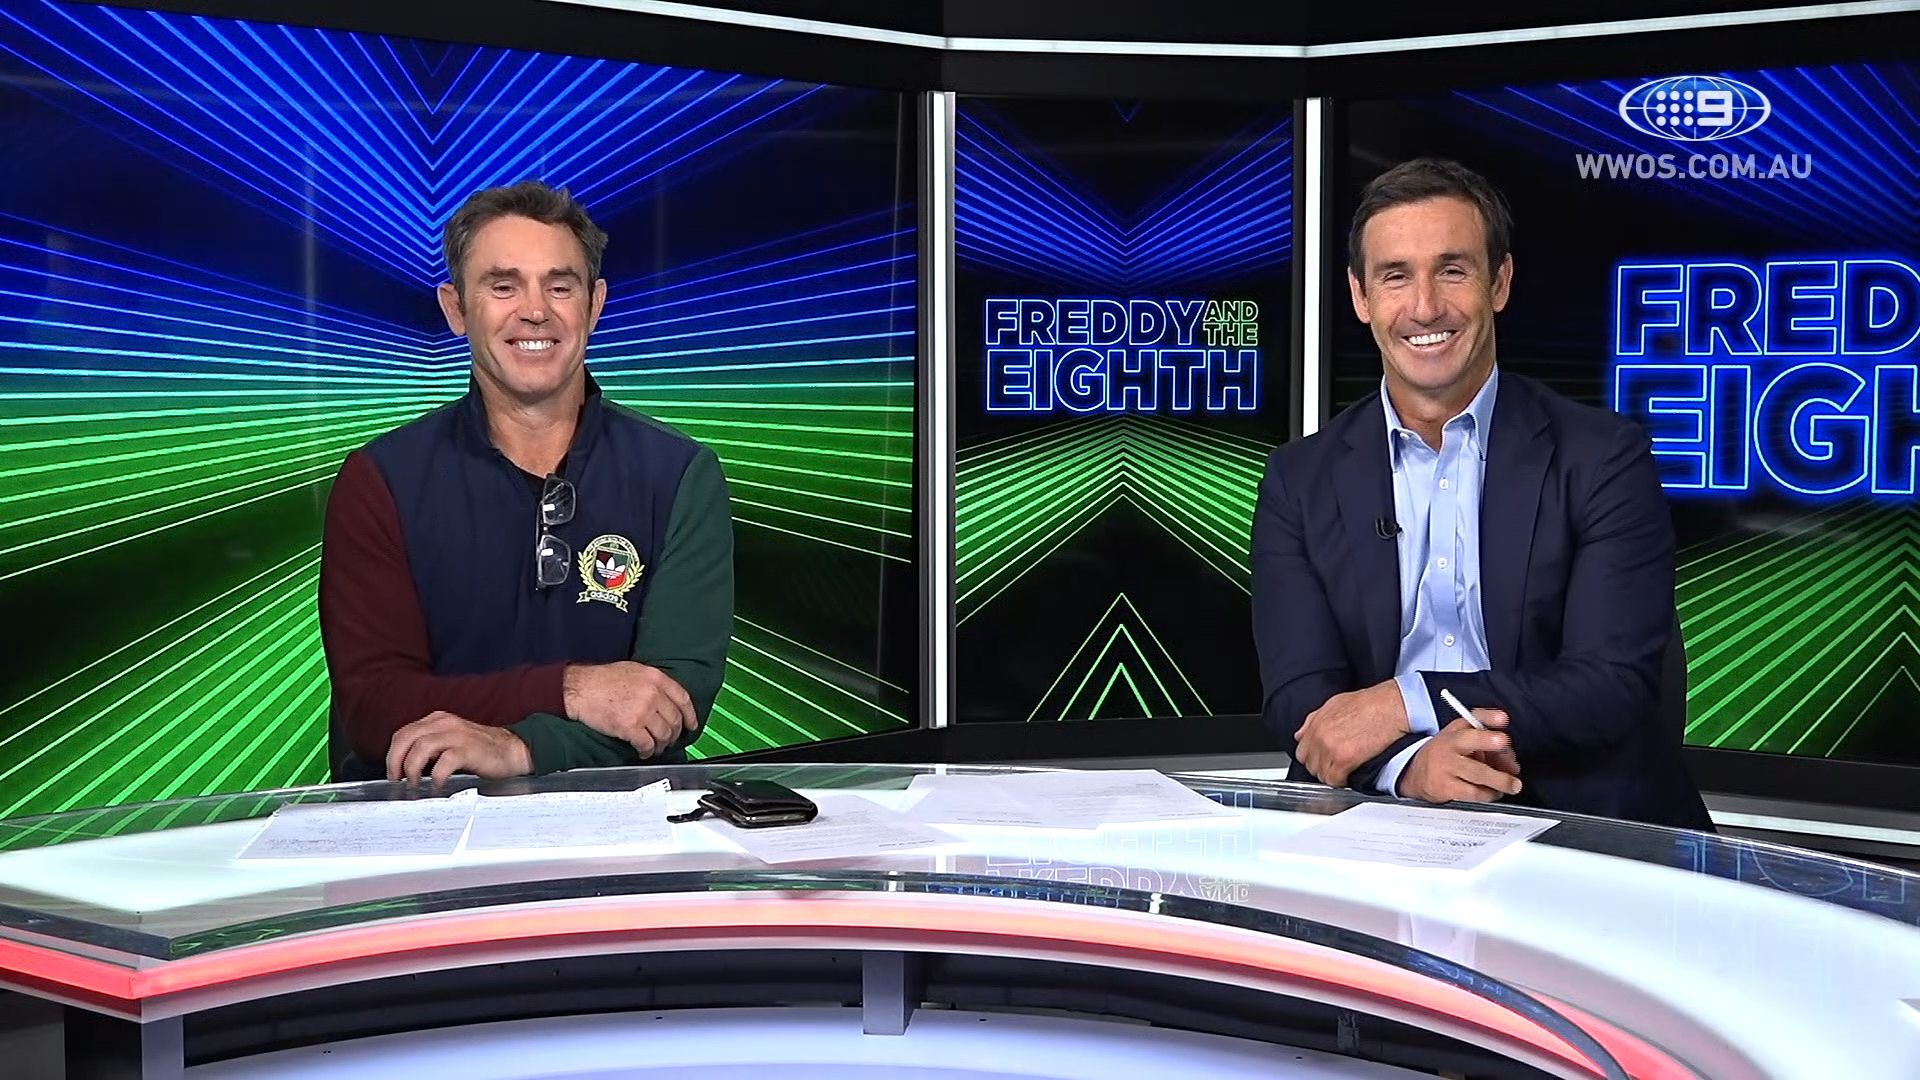 NRL Round 23 tips: Andrew Johns, Brad Fittler and Nine's experts give their predictions